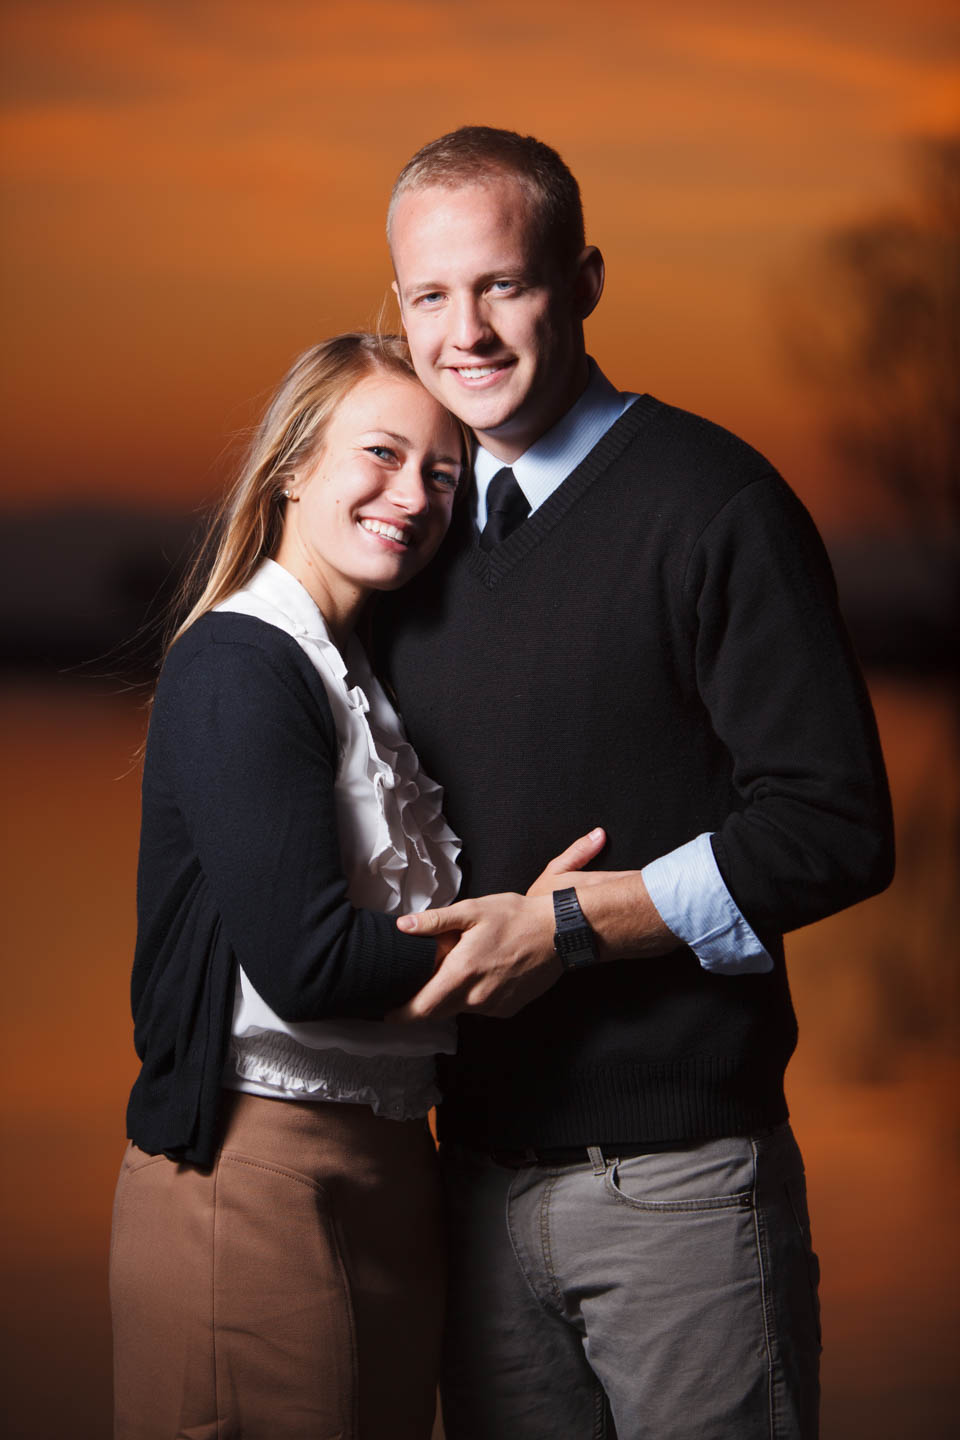 Creative lighting for the engagement photos